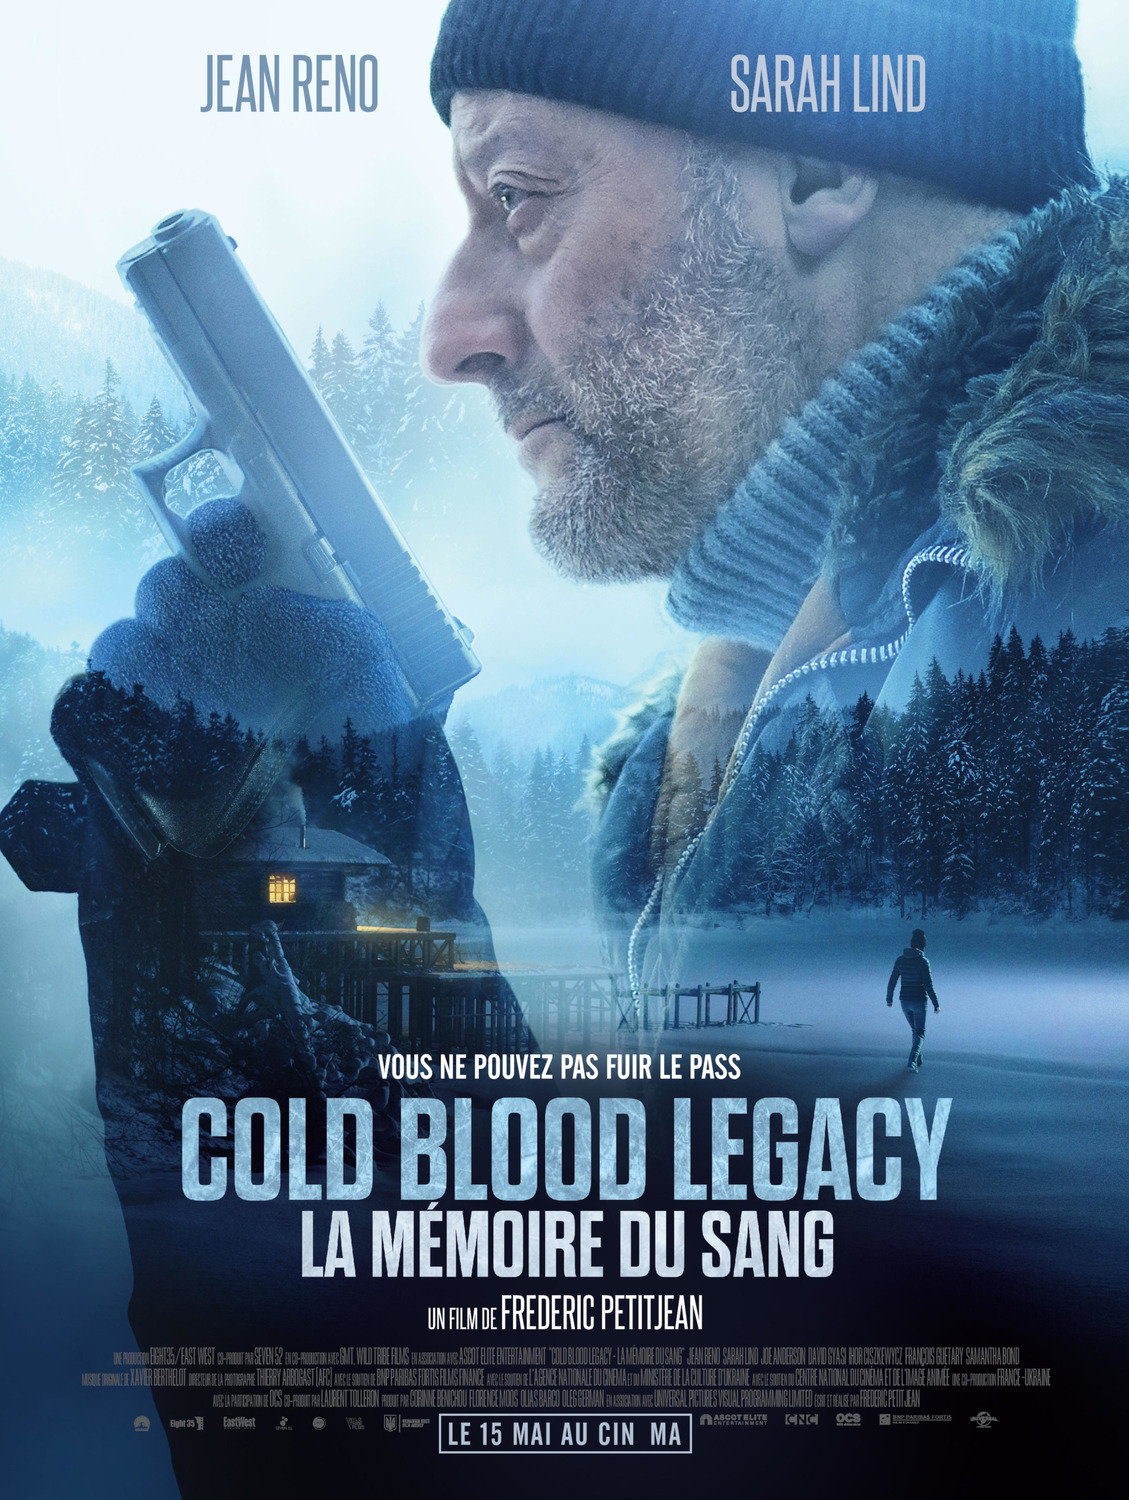 Cold Blood Legacy poster image